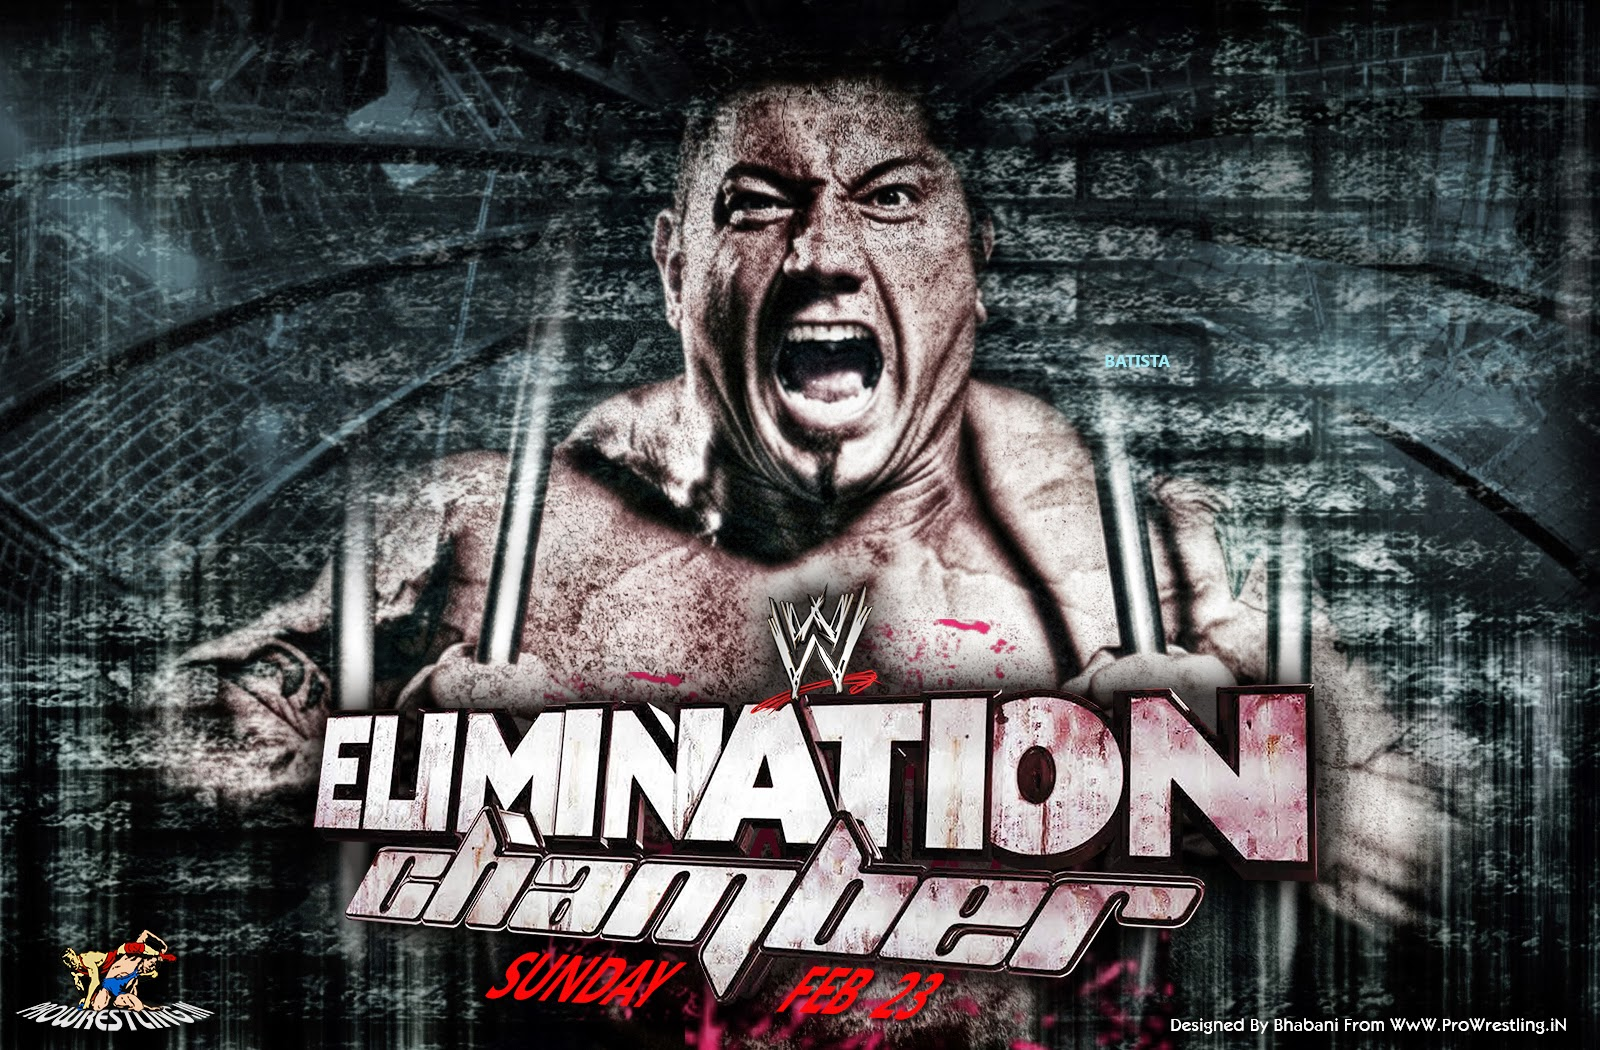 Wallpaper » Download WWE Elimination Chamber 2014 Wallpaper (Designed By Bhabani) [feat. Batista]